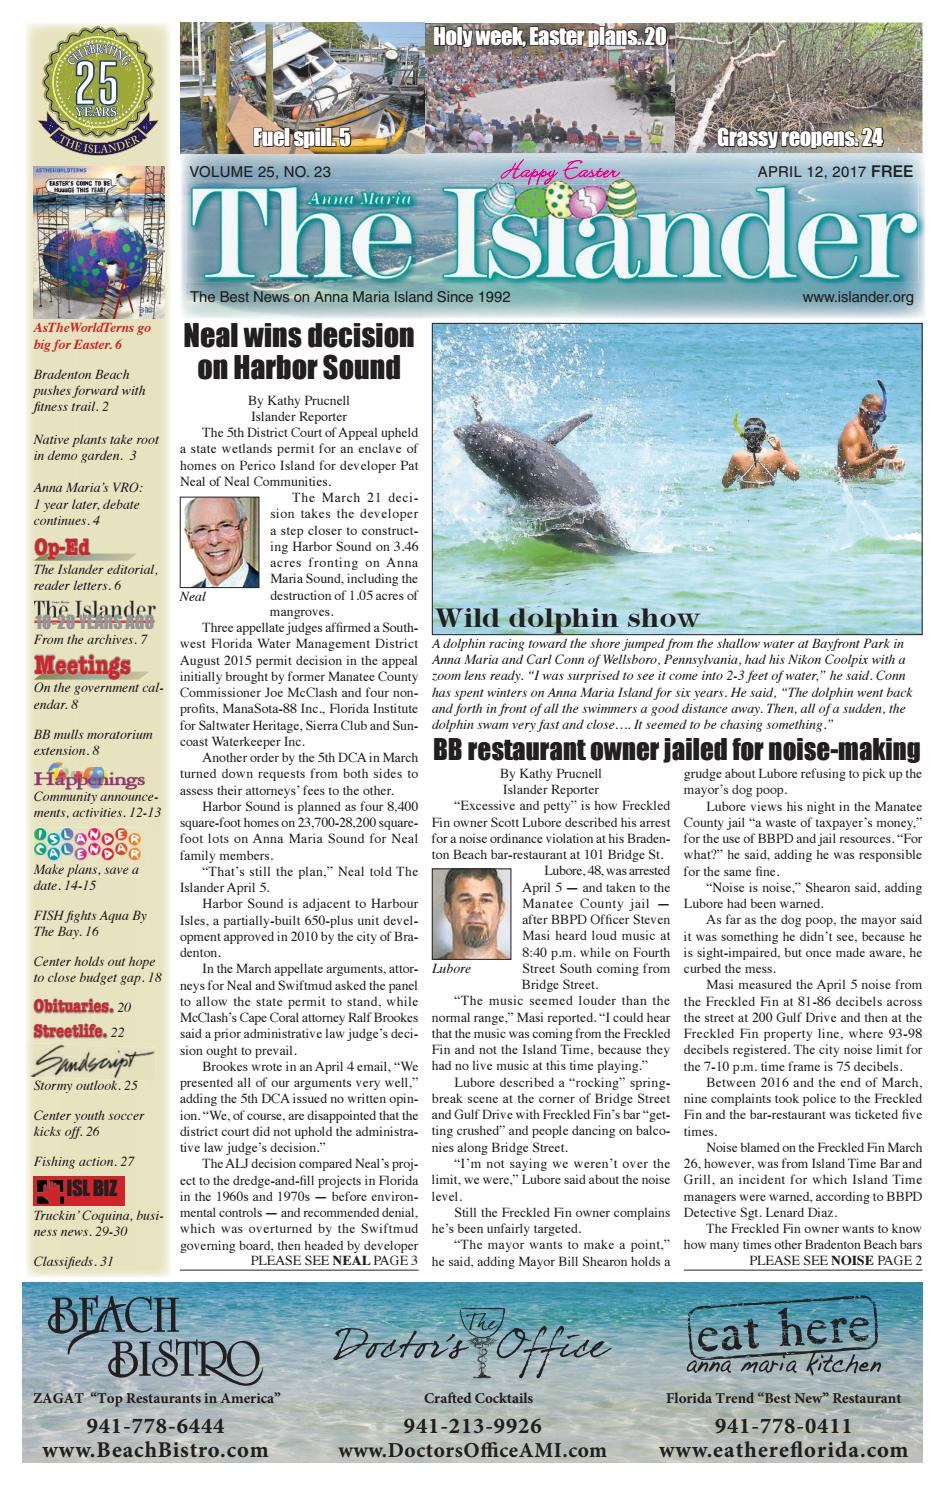 The Islander Newspaper E-Edition: Wednesday, April 12, 2017 by The